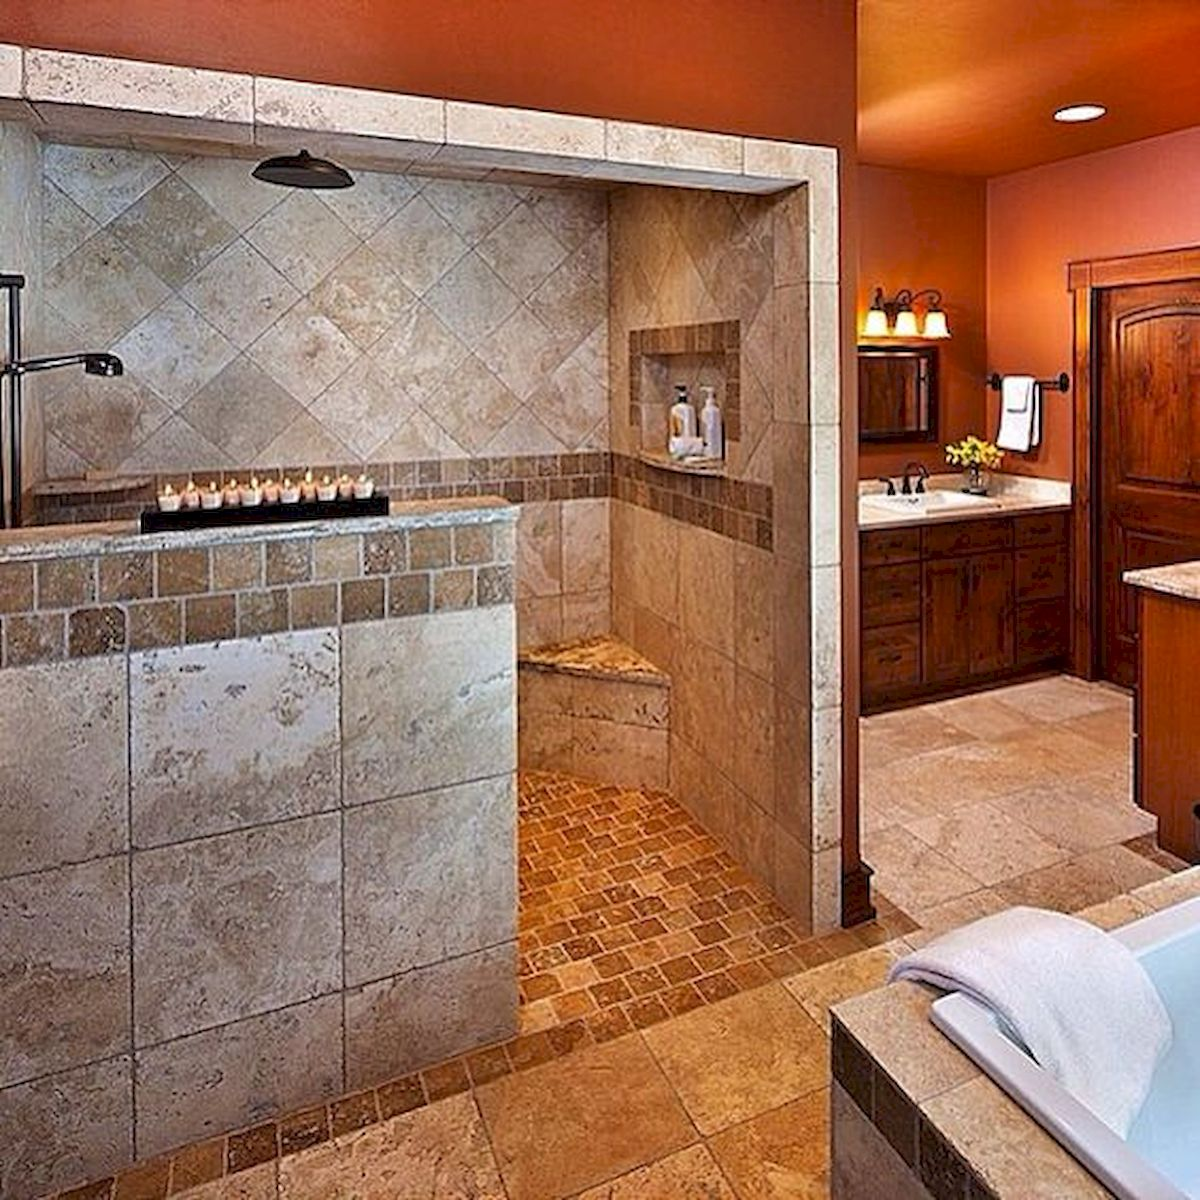 50 Fantastic Walk In Shower No Door For Bathroom Ideas